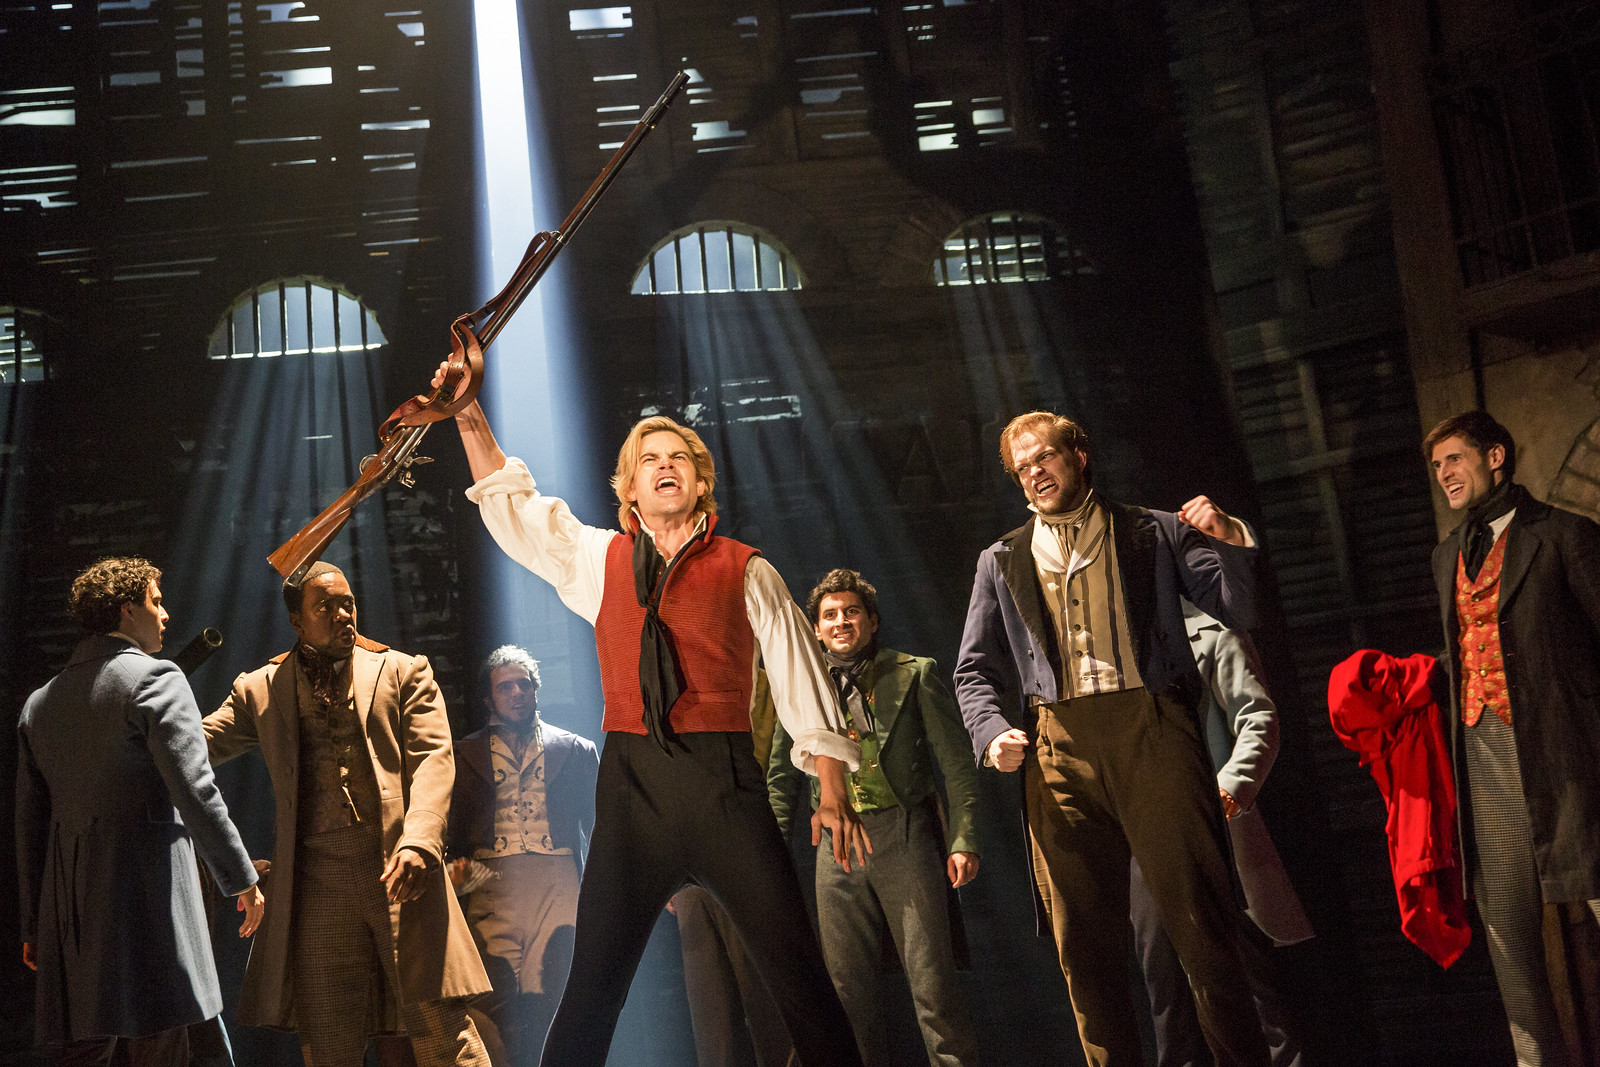 Matt Shingledecker as Enjolras in the new national tour of Les Miserables (photo: Matthew Murphy) // Broadway in Detroit: Les Miserables At The Fisher Theatre - Wading in Big Shoes